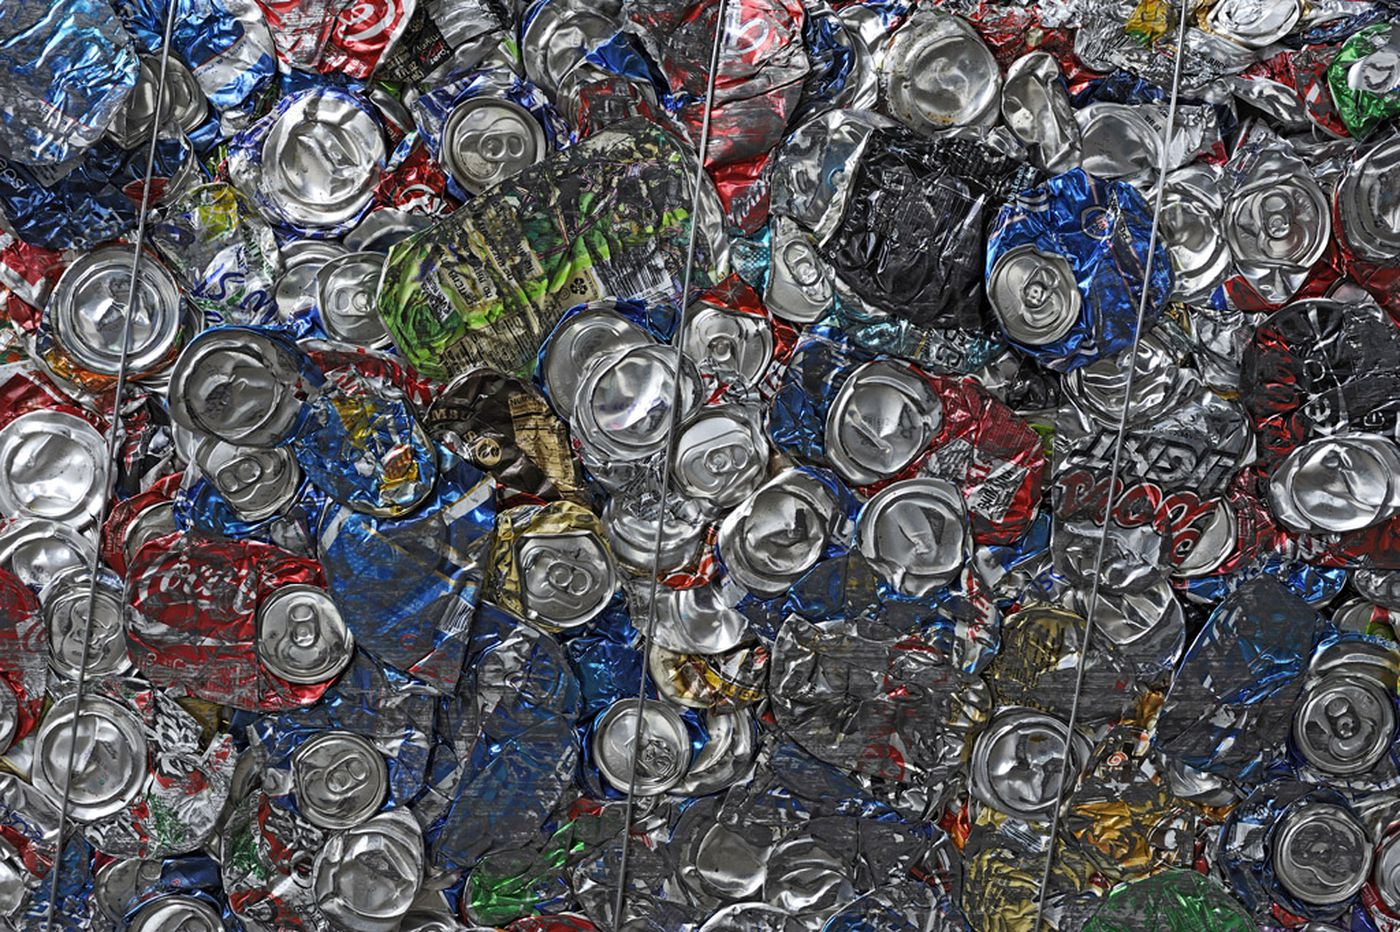 Commentary: Do's and don'ts of Philly recycling